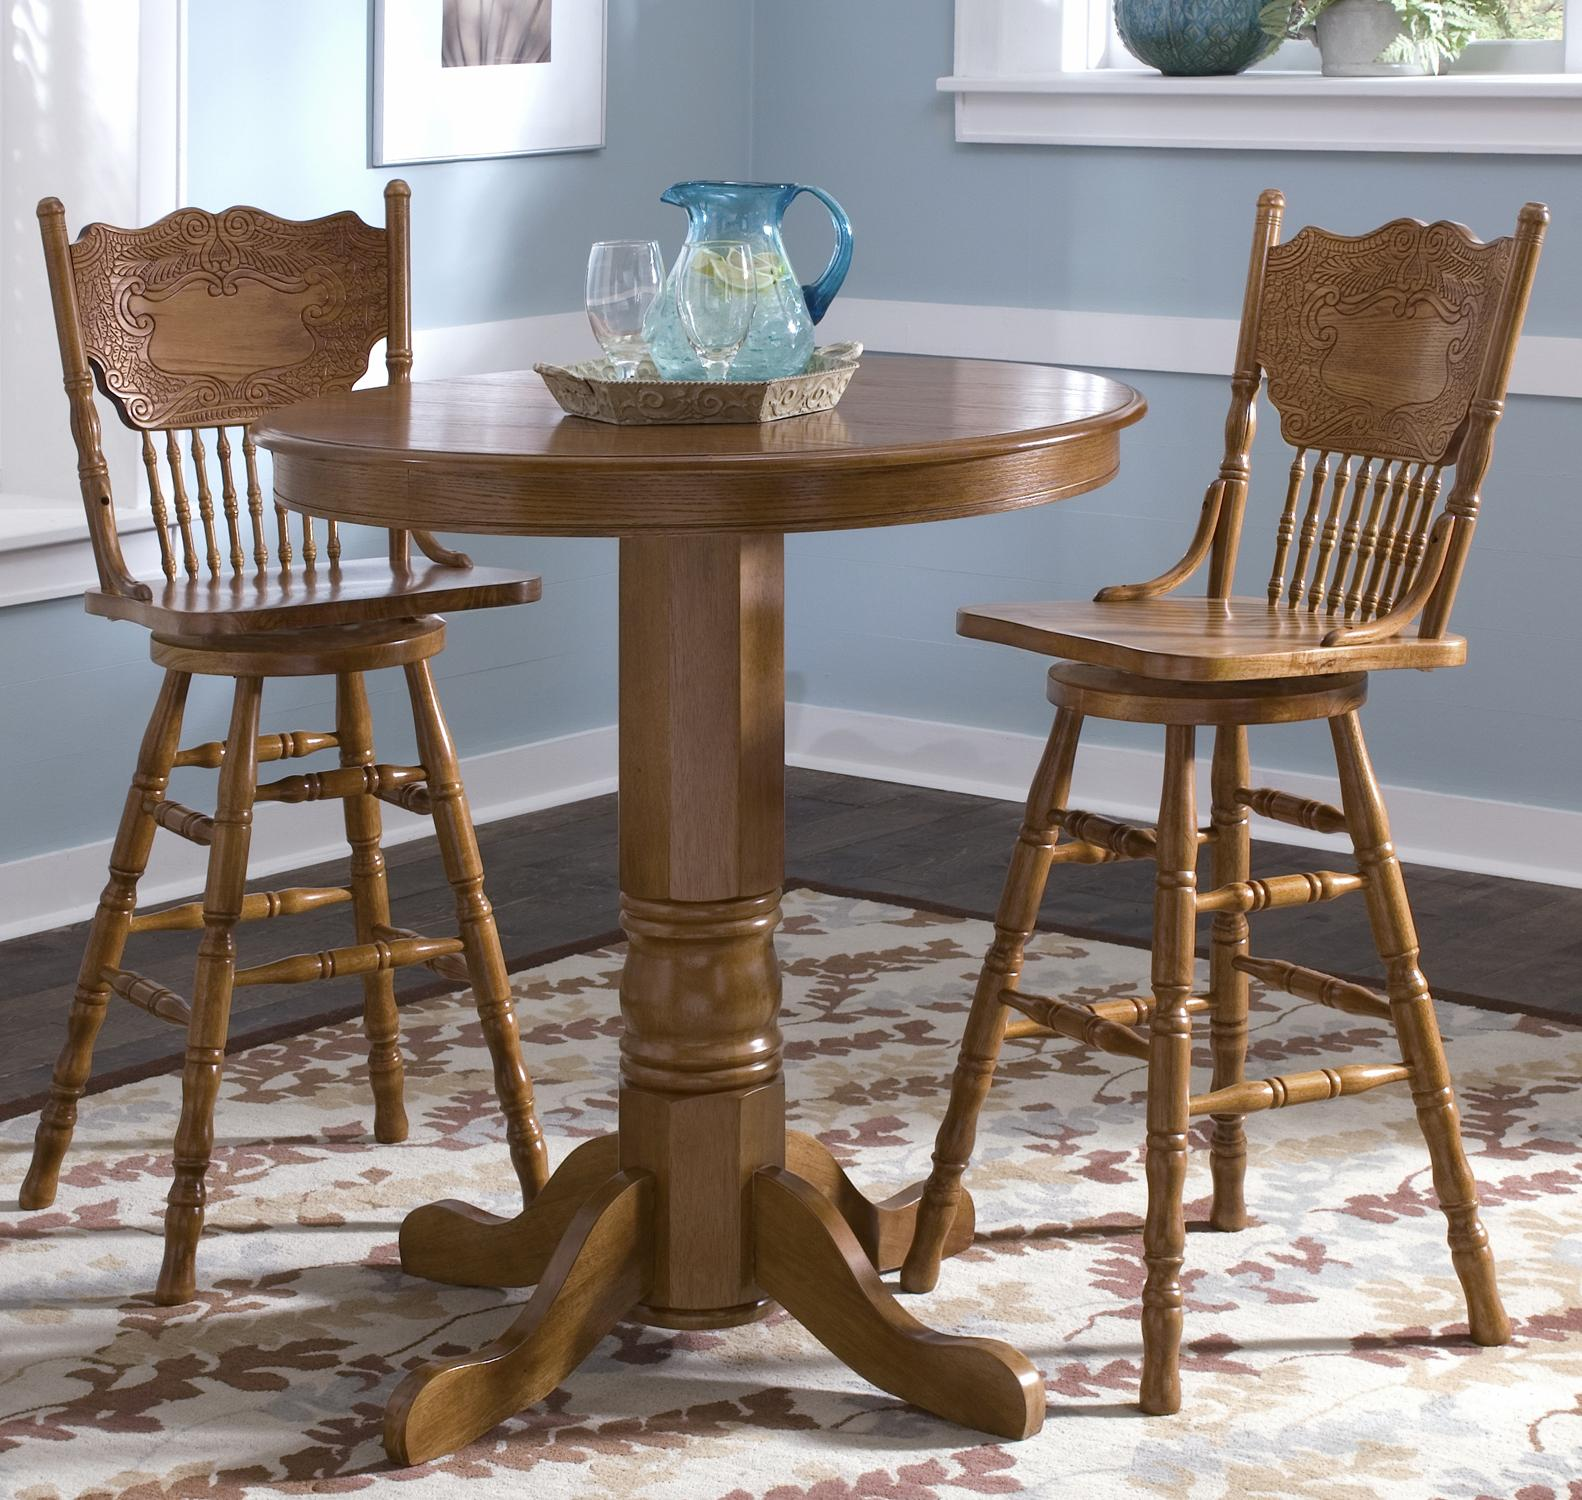 Liberty Furniture Nostalgia Round Pub Table with 2 Press Back Barstools - Item Number 10 & Liberty Furniture Nostalgia Round Pub Table with 2 Press Back ...